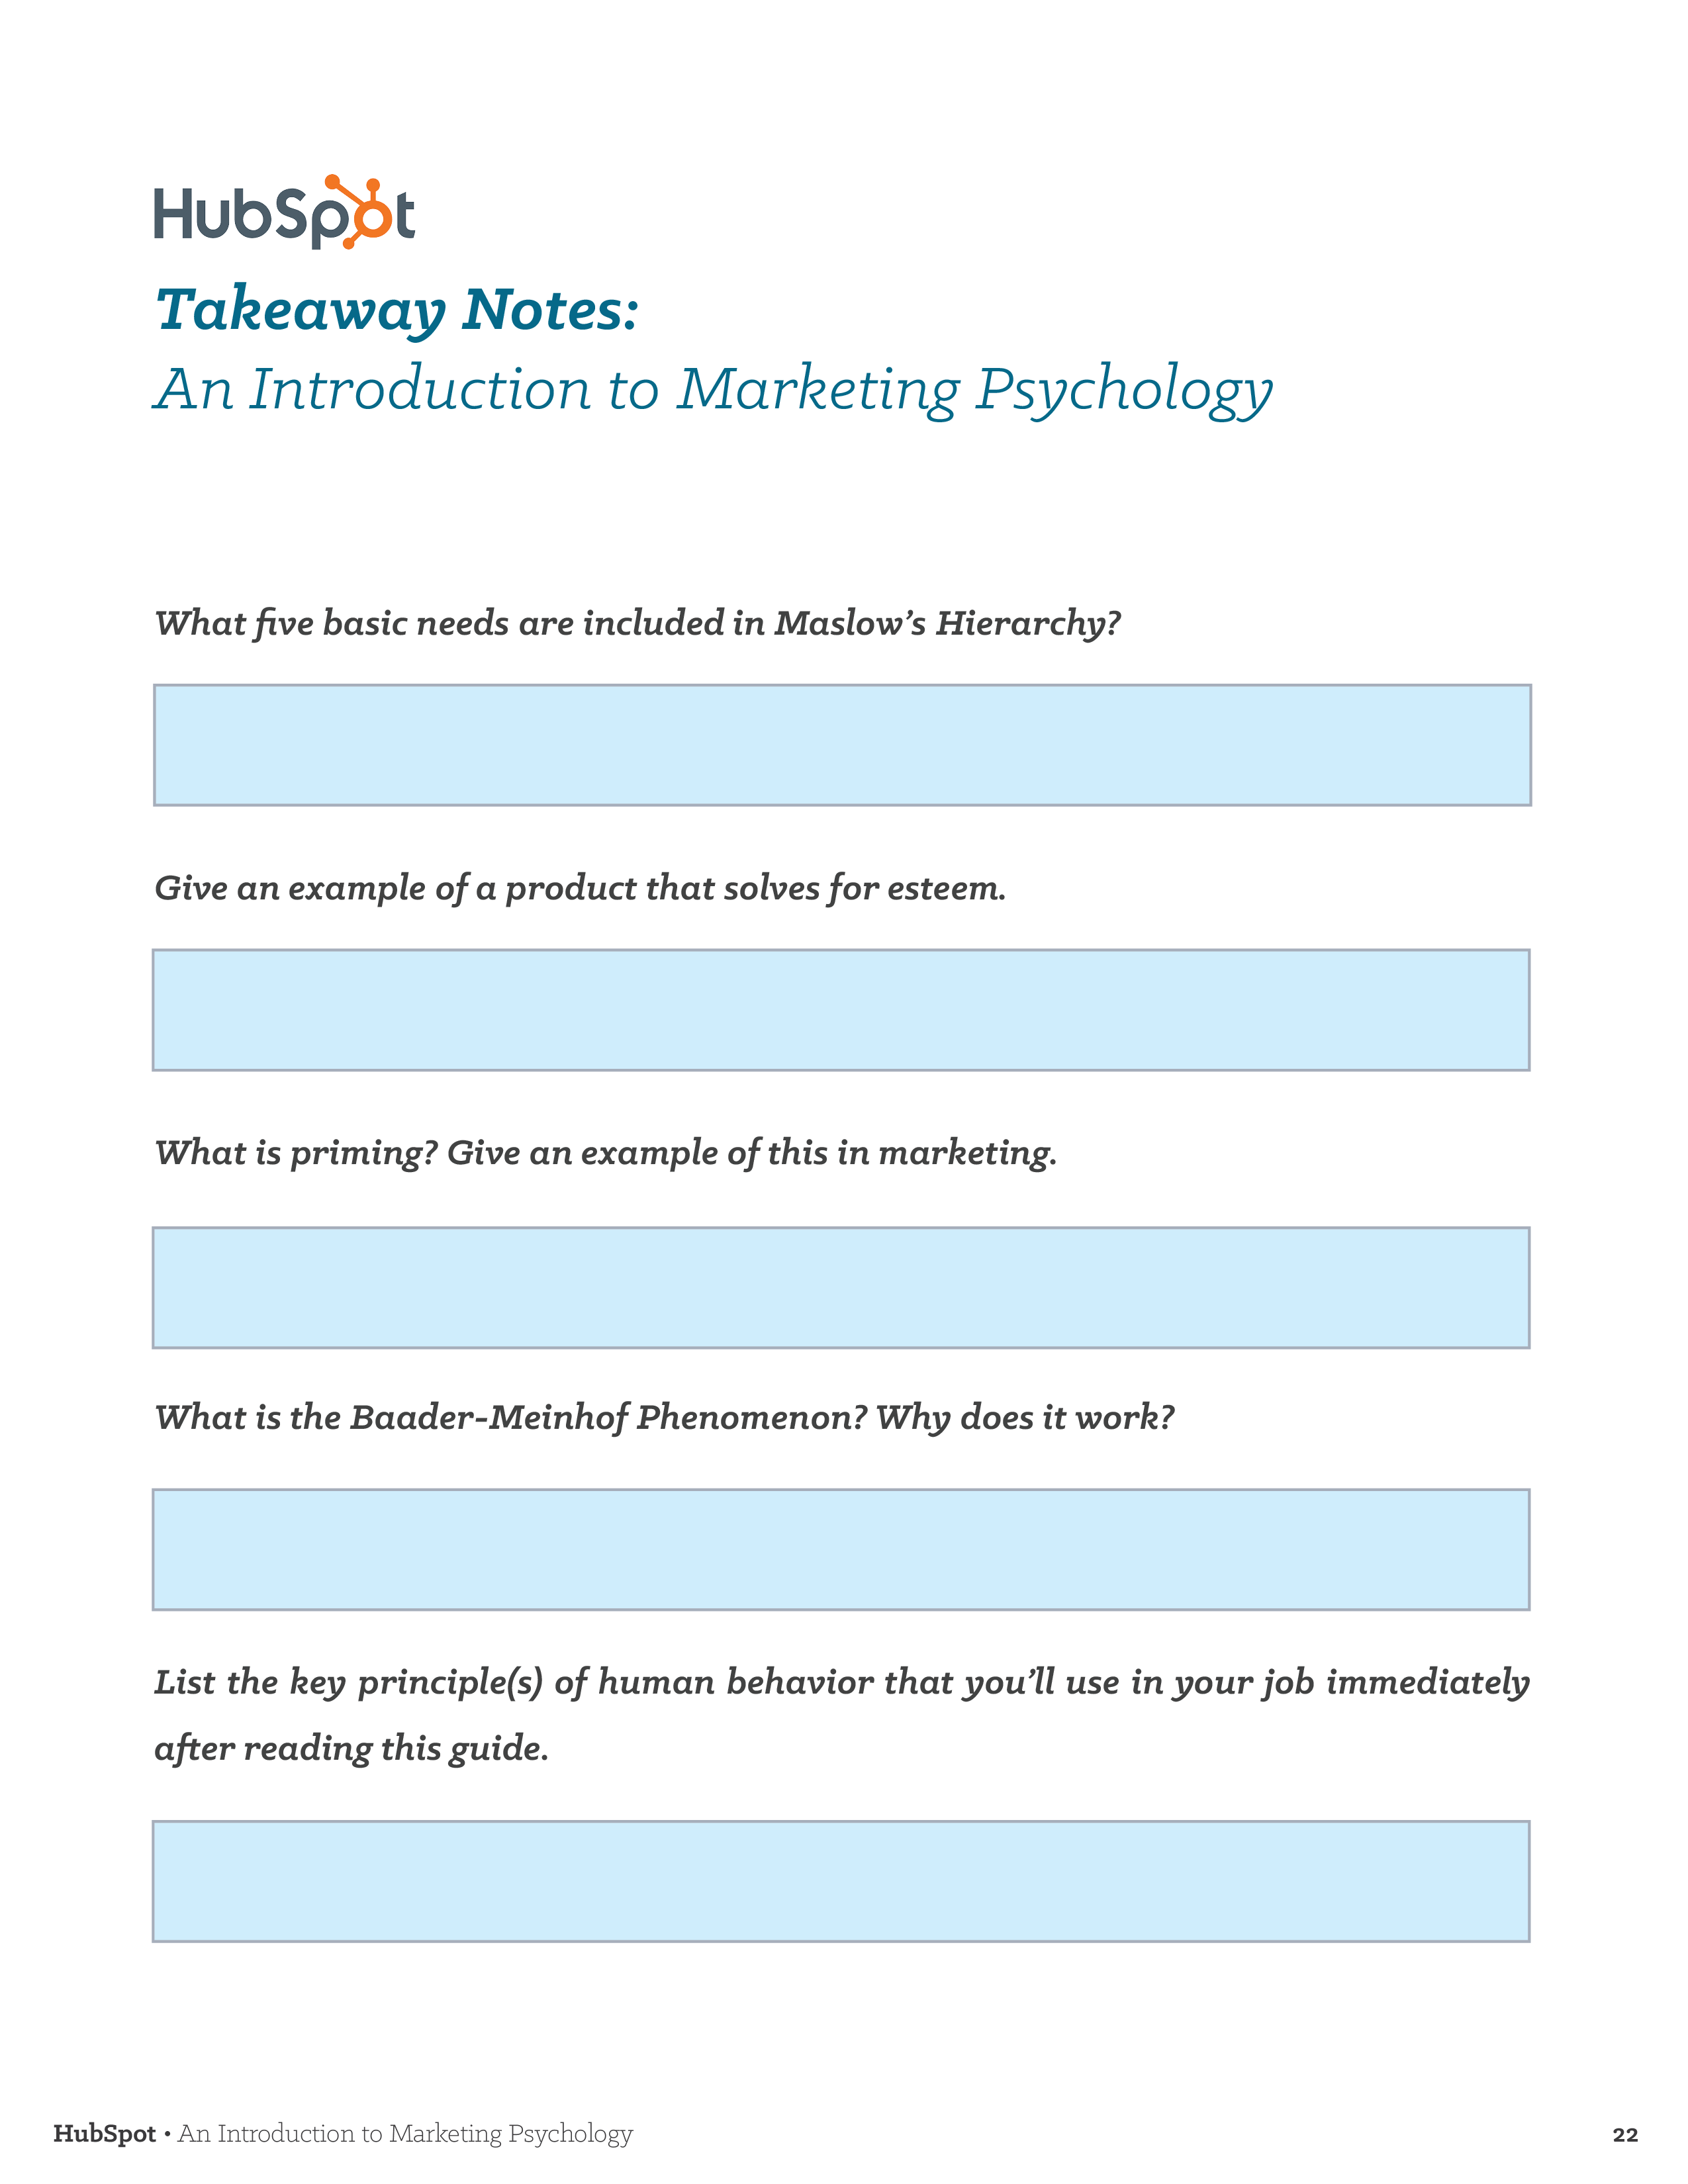 Marketing_Psychology22.png